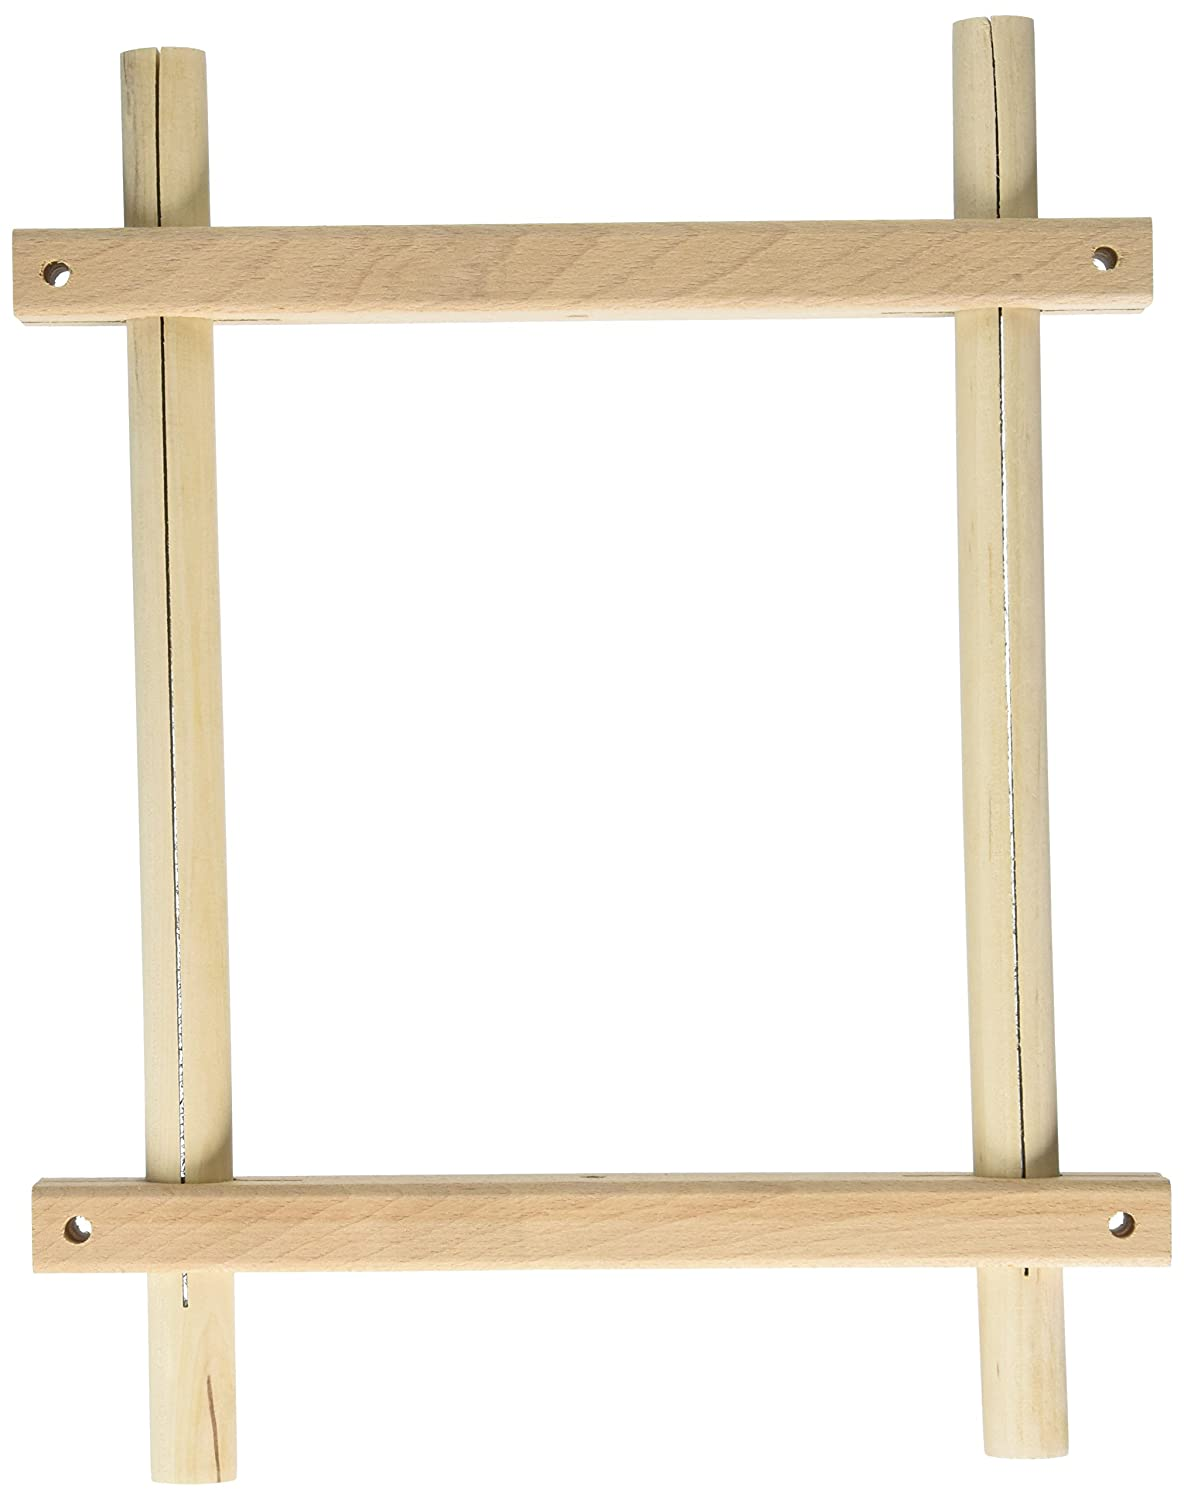 Edmunds Split Rail Scroll Frame, 8-1/2 by 24-Inch Notions - In Network 2997